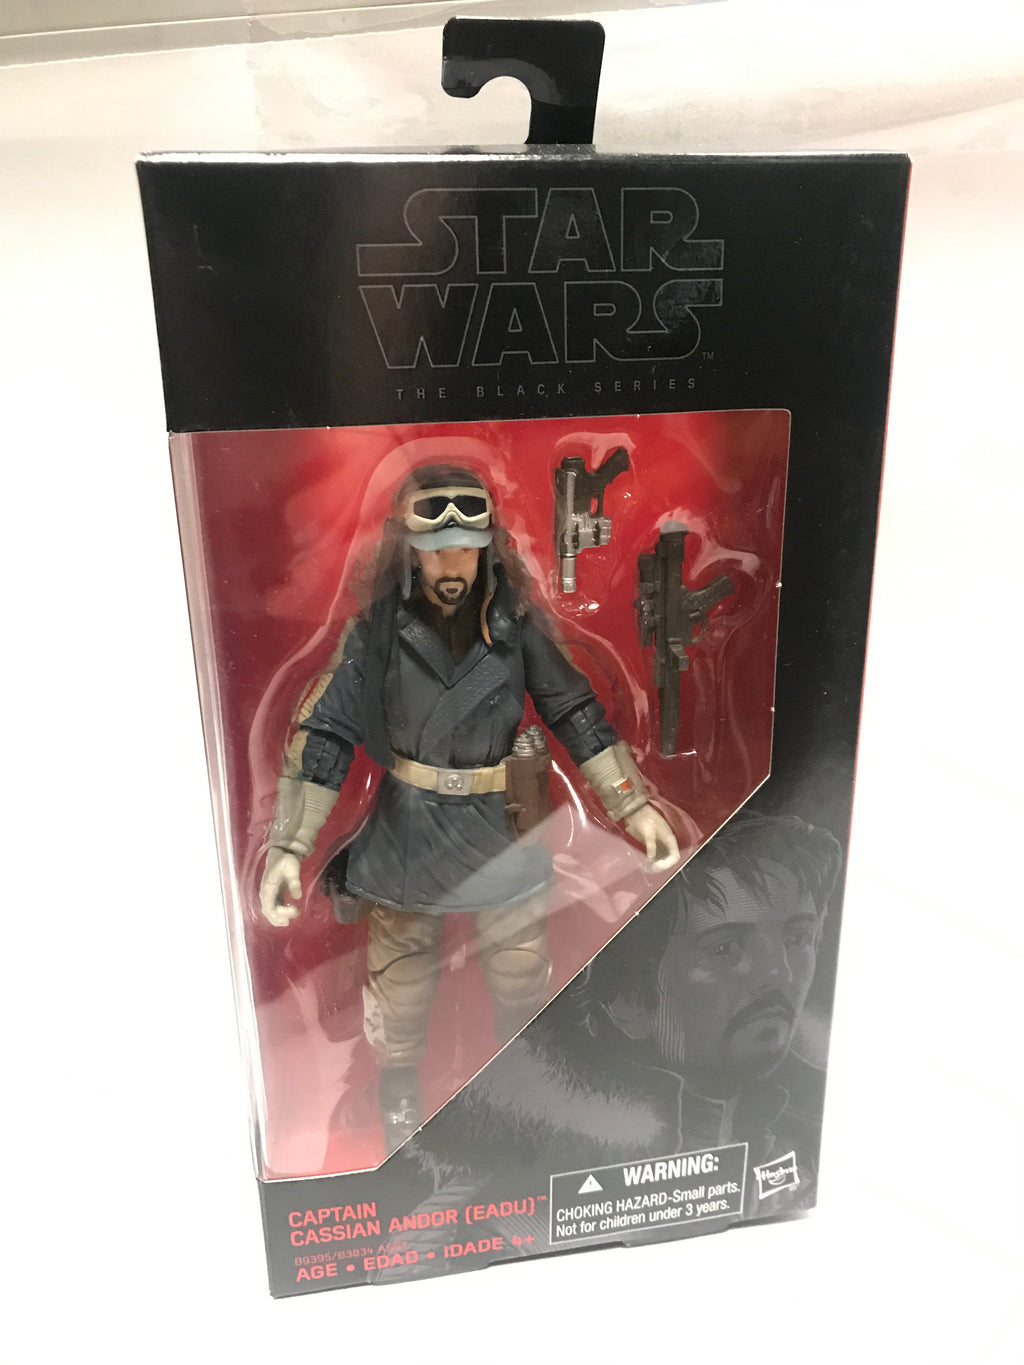 Star Wars Black Series Captain Cassian Andor (Eadu)